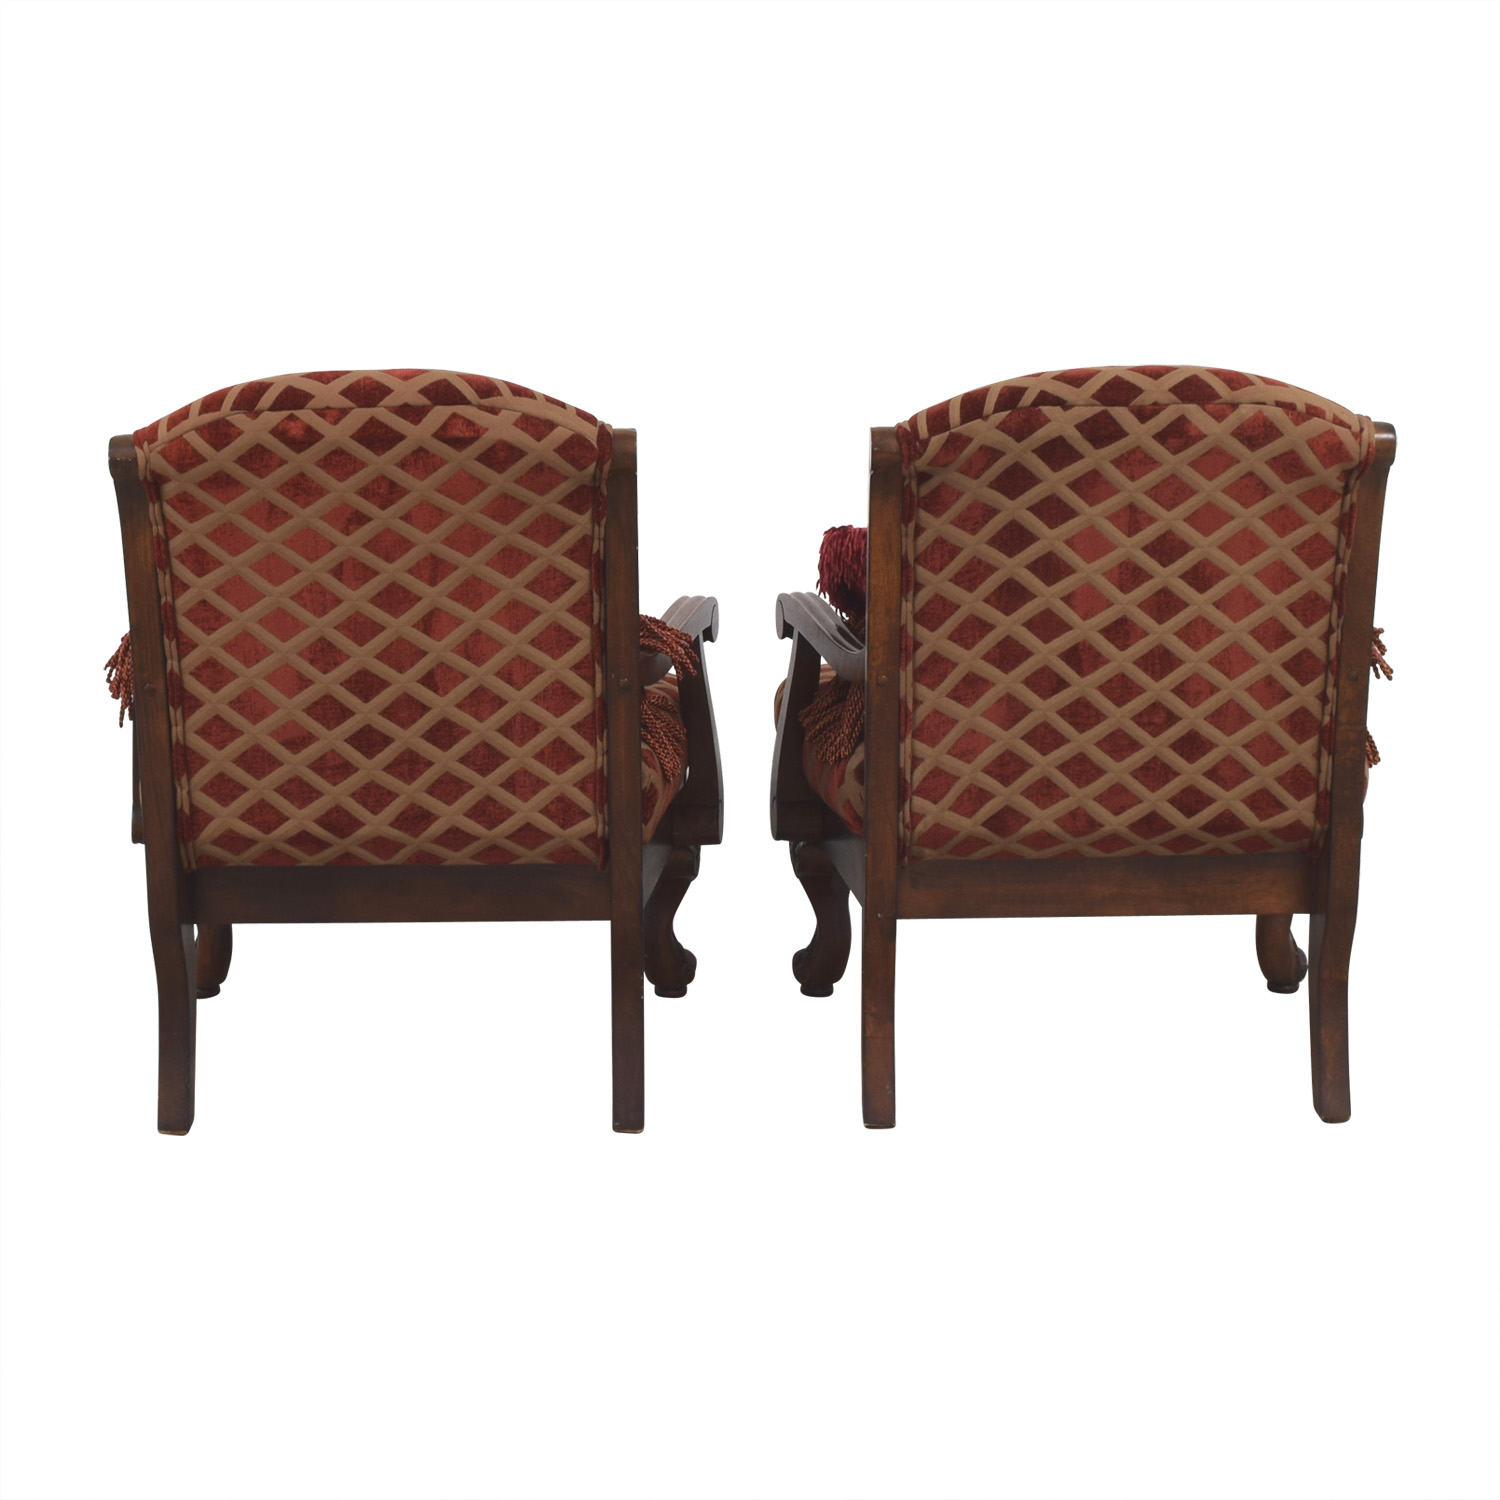 buy Burgundy and Gold Accent Chairs with Toss Pillows online